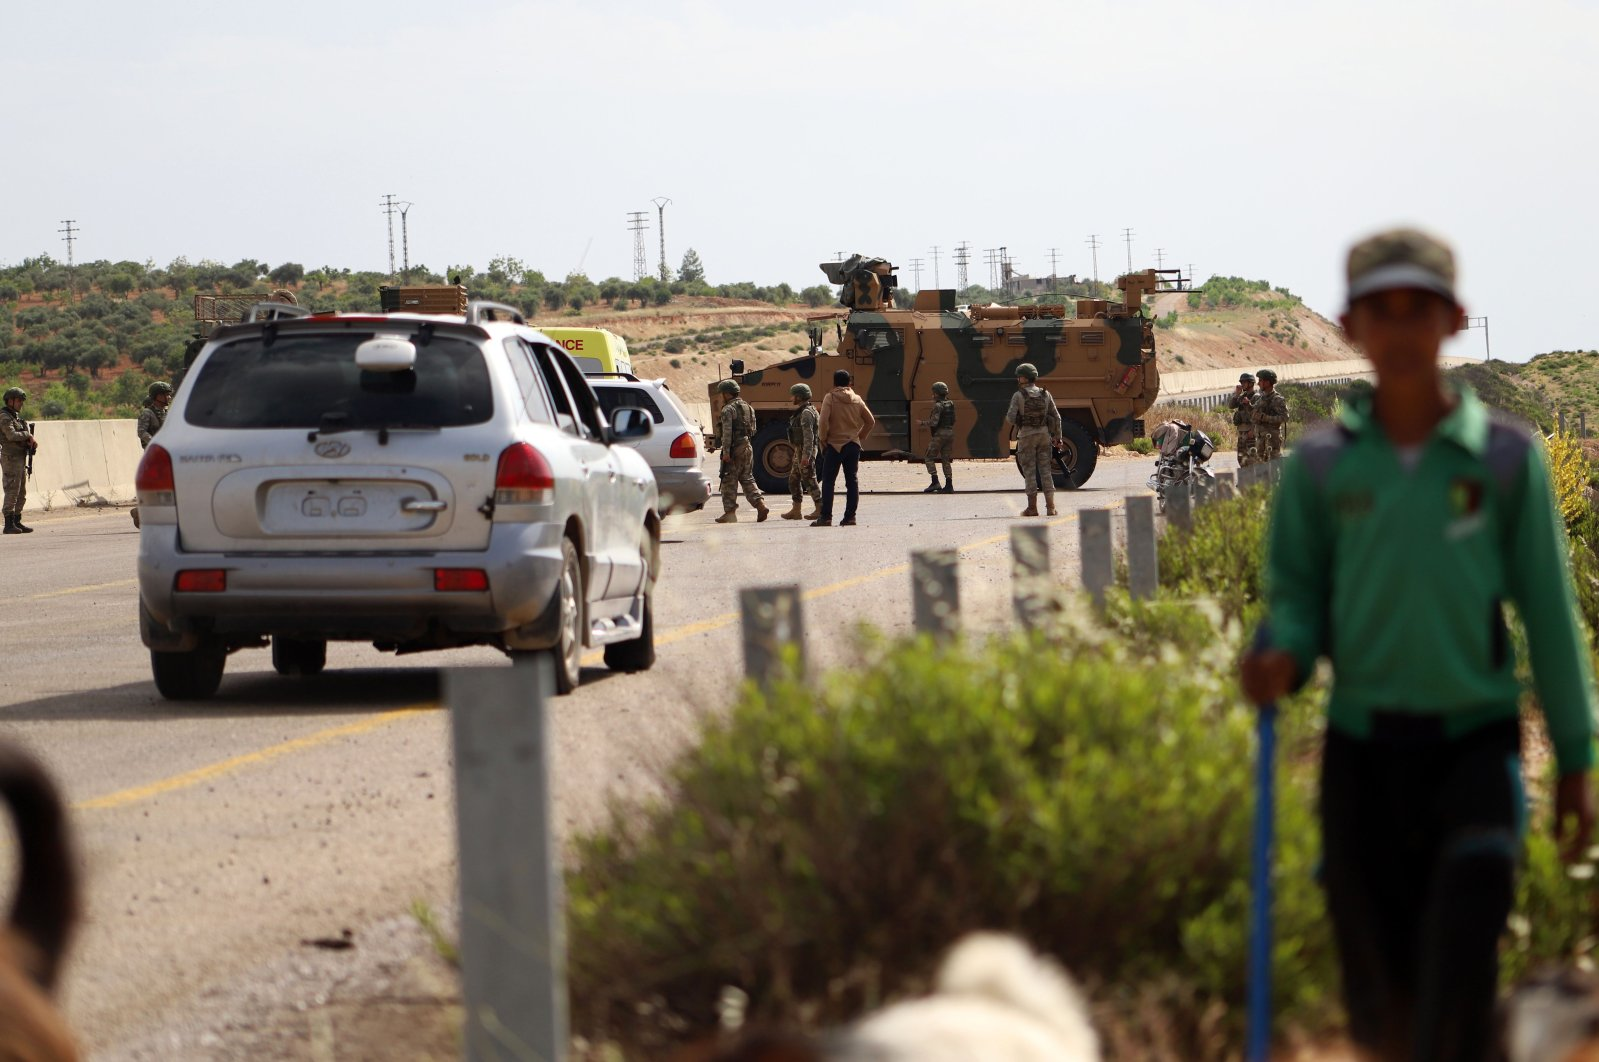 A shepherd boy leads his flock near Turkish soldiers standing outside an armored vehicle, part of a joint Turkish-Russian military patrol, along the M4 highway in Ariha in the opposition-held northwestern Syrian province of Idlib, June 2, 2020. (AFP Photo)